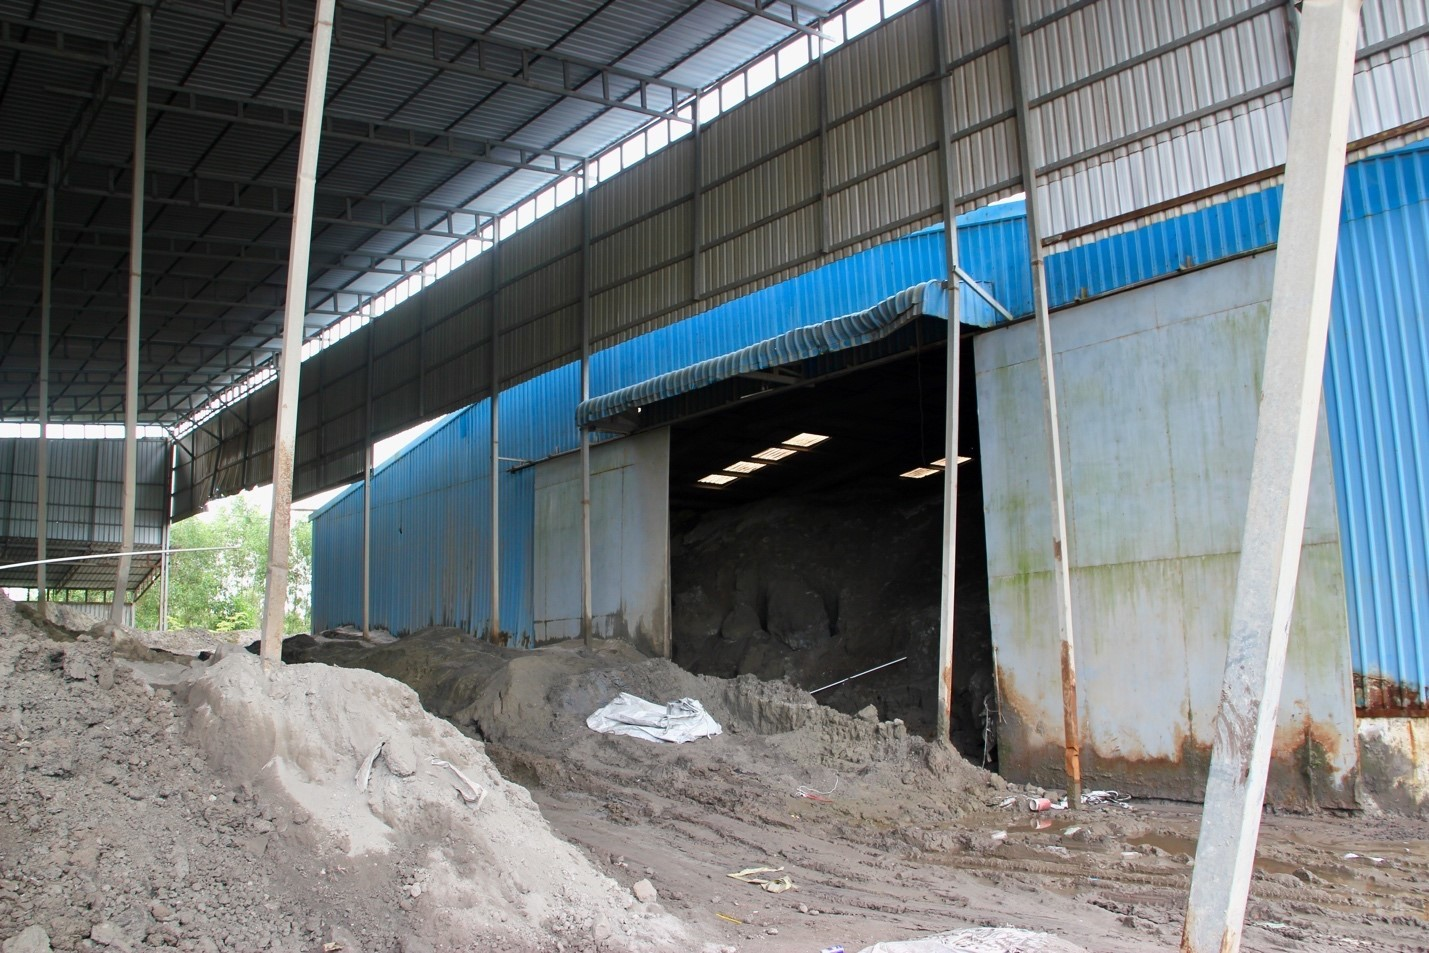 Coal ash, stored in the blue warehouse (Image: Lili Pike)